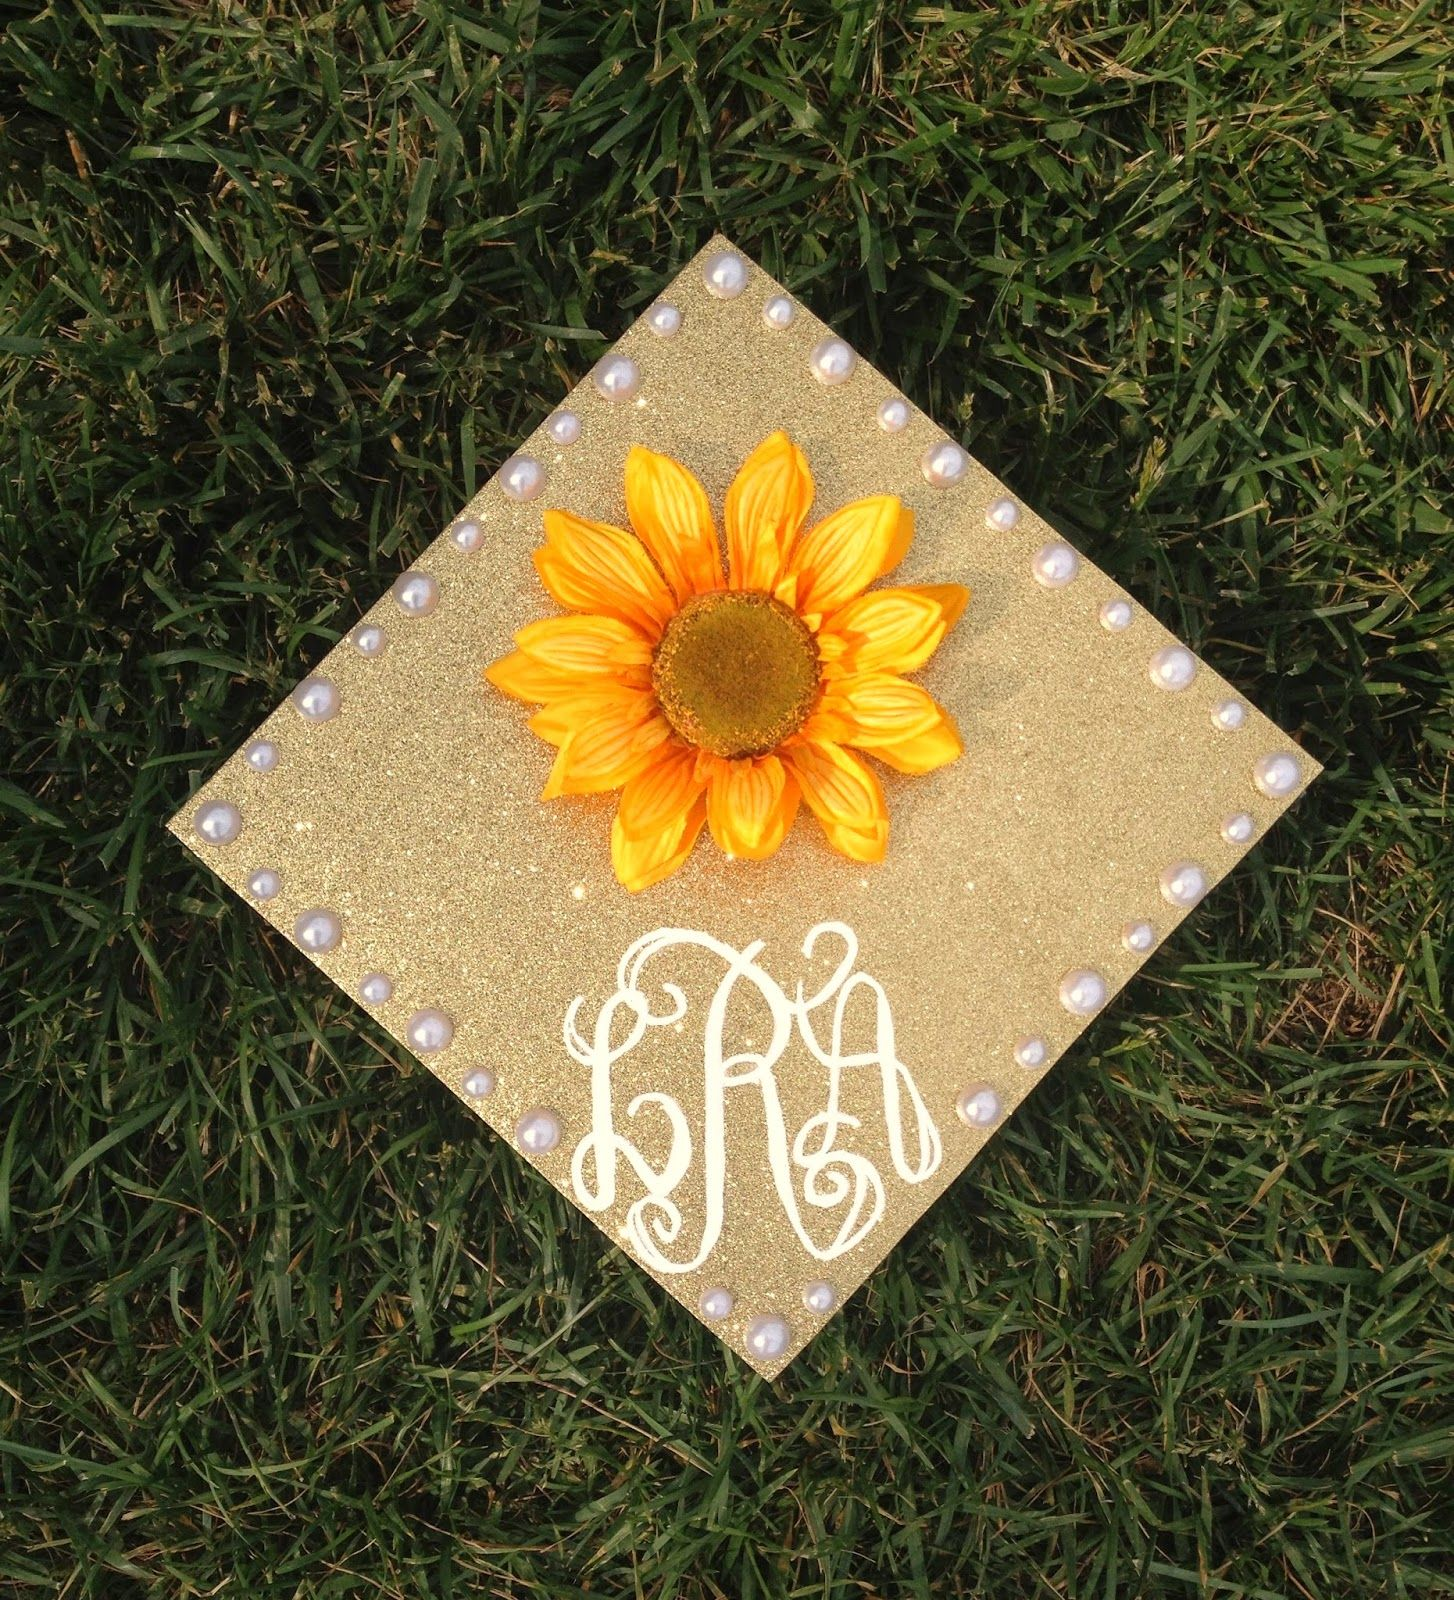 Astonishing Paint How To Decorate A Graduation Cap Graduation Cap Graduation Cap Graduation How To Decorate A Graduation Cap College ideas How To Decorate A Graduation Cap